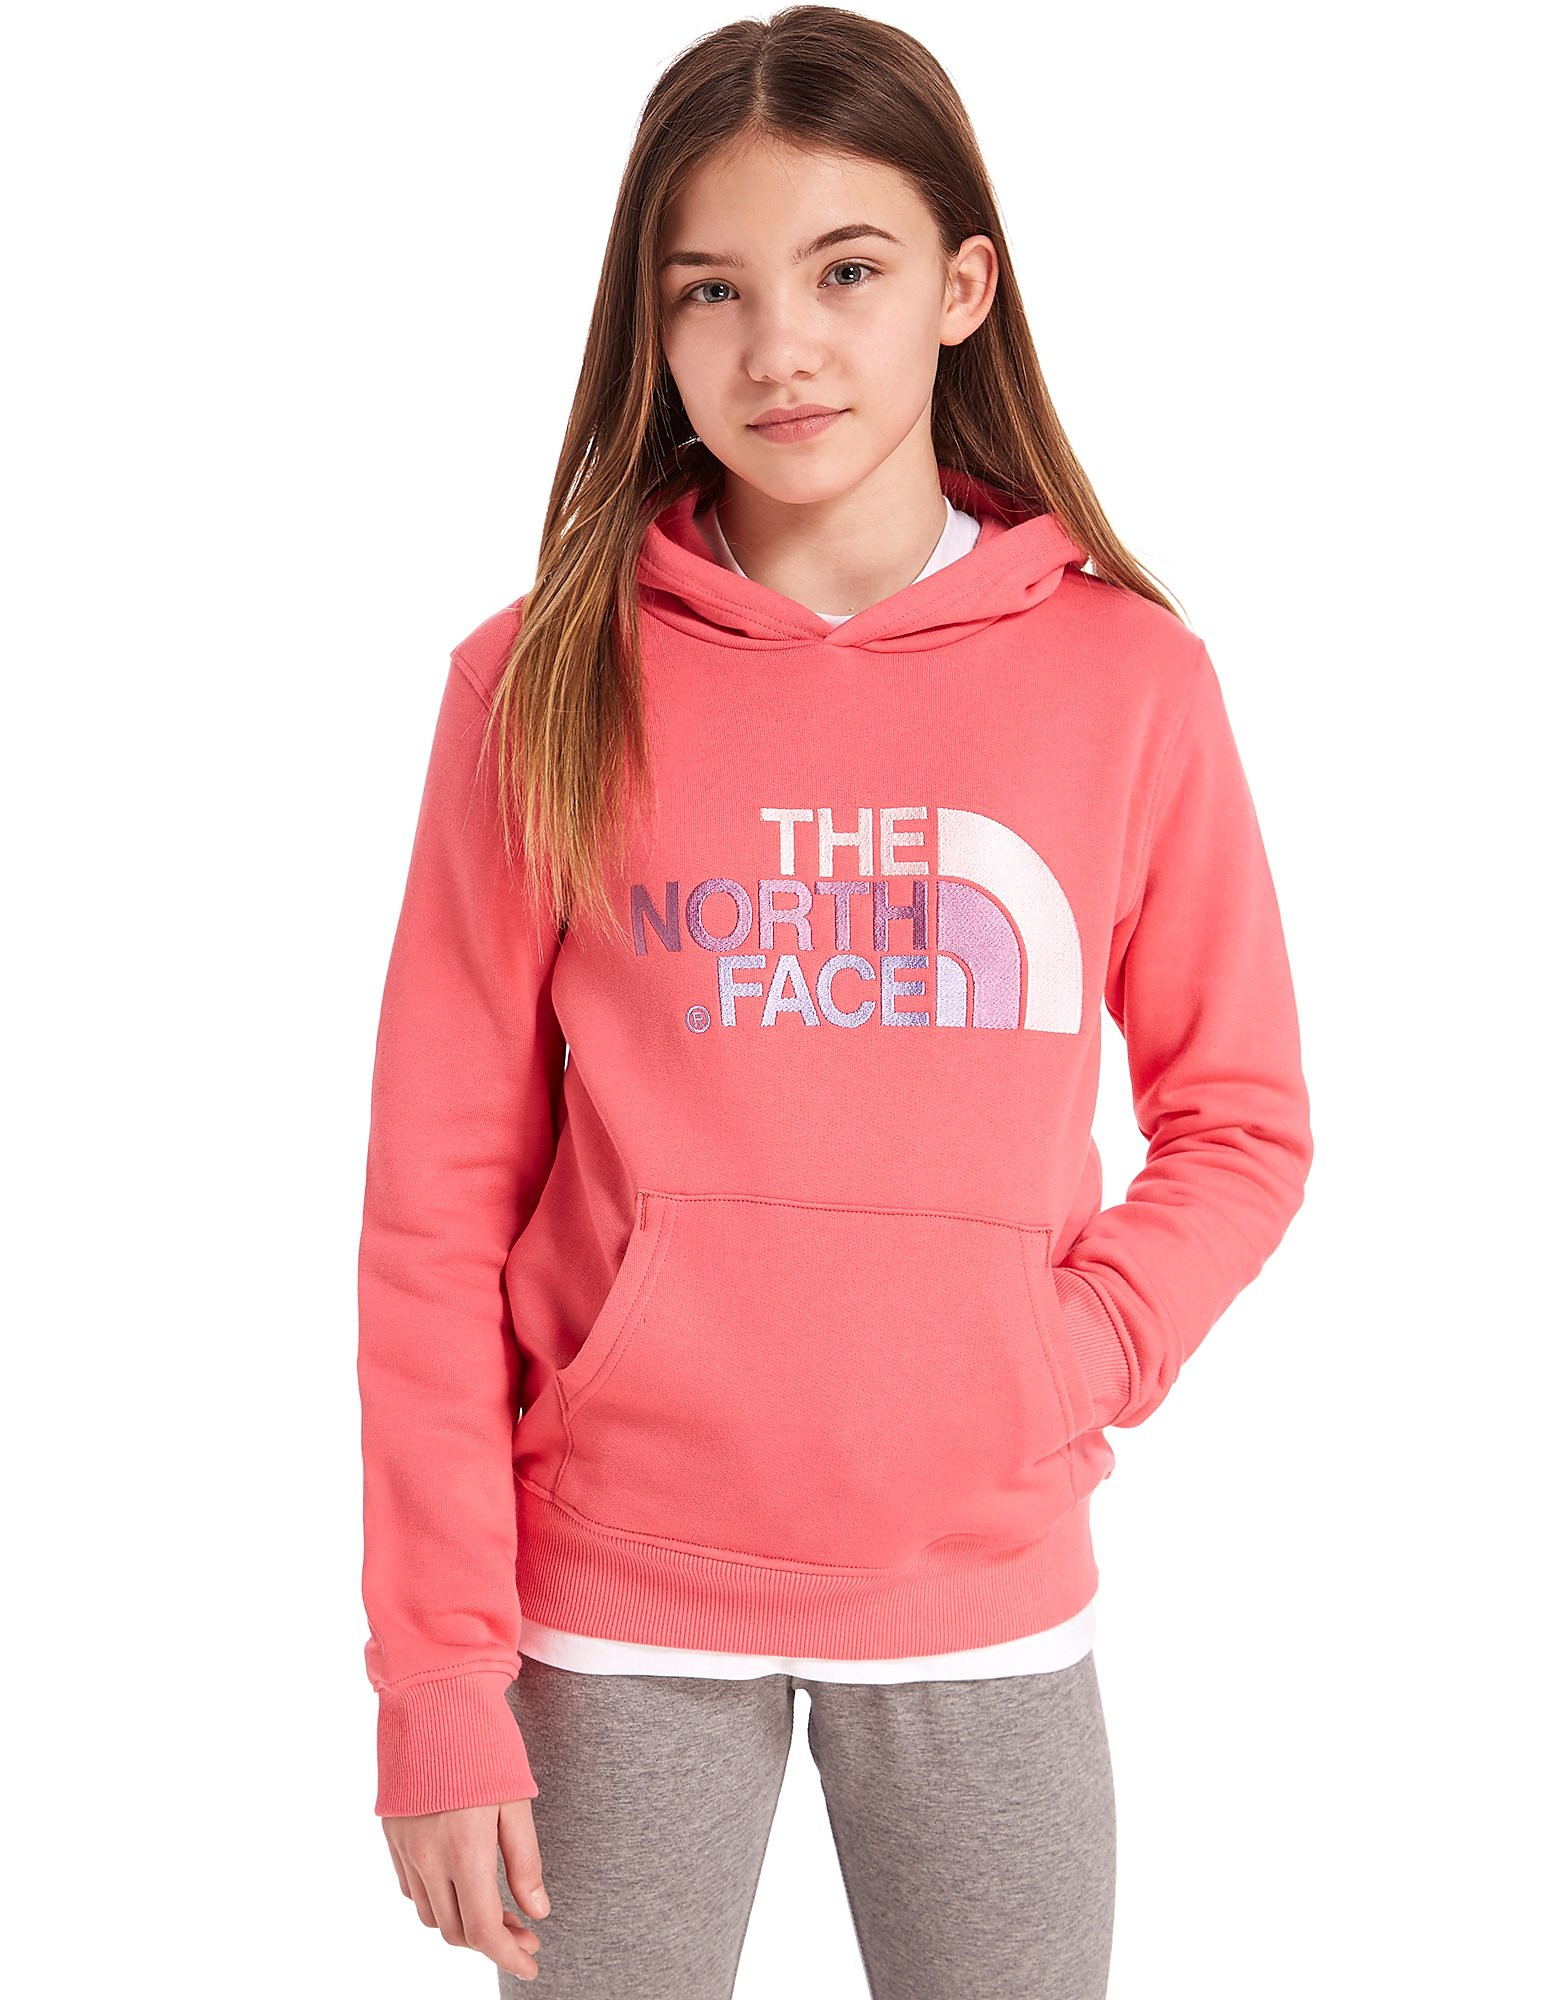 The North Face Girls' Drew Peak Hoody